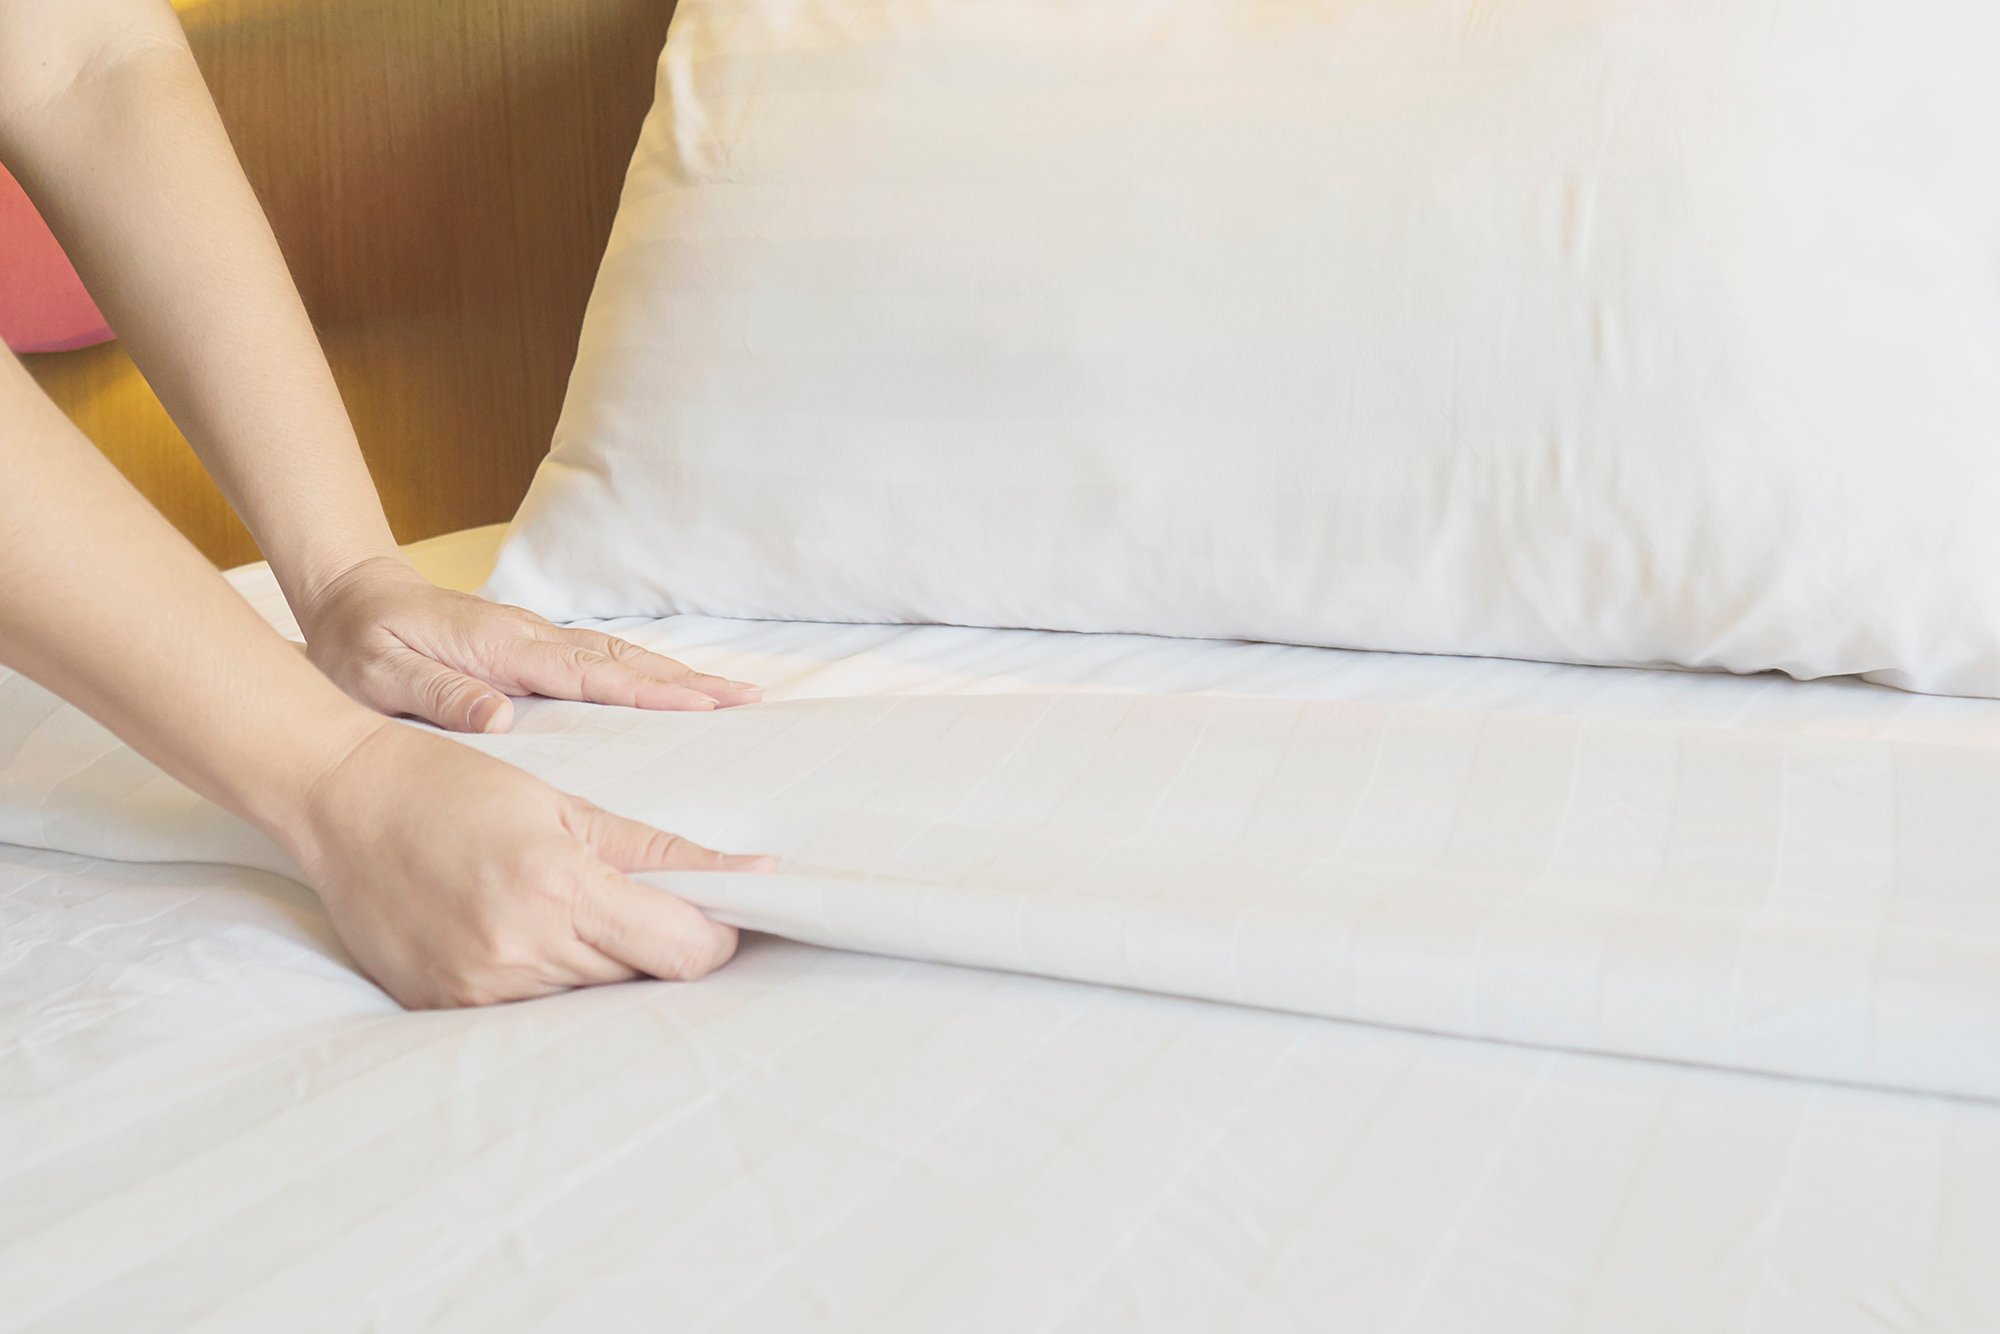 lady-hands-set-up-white-bed-sheet-in-hotel-room